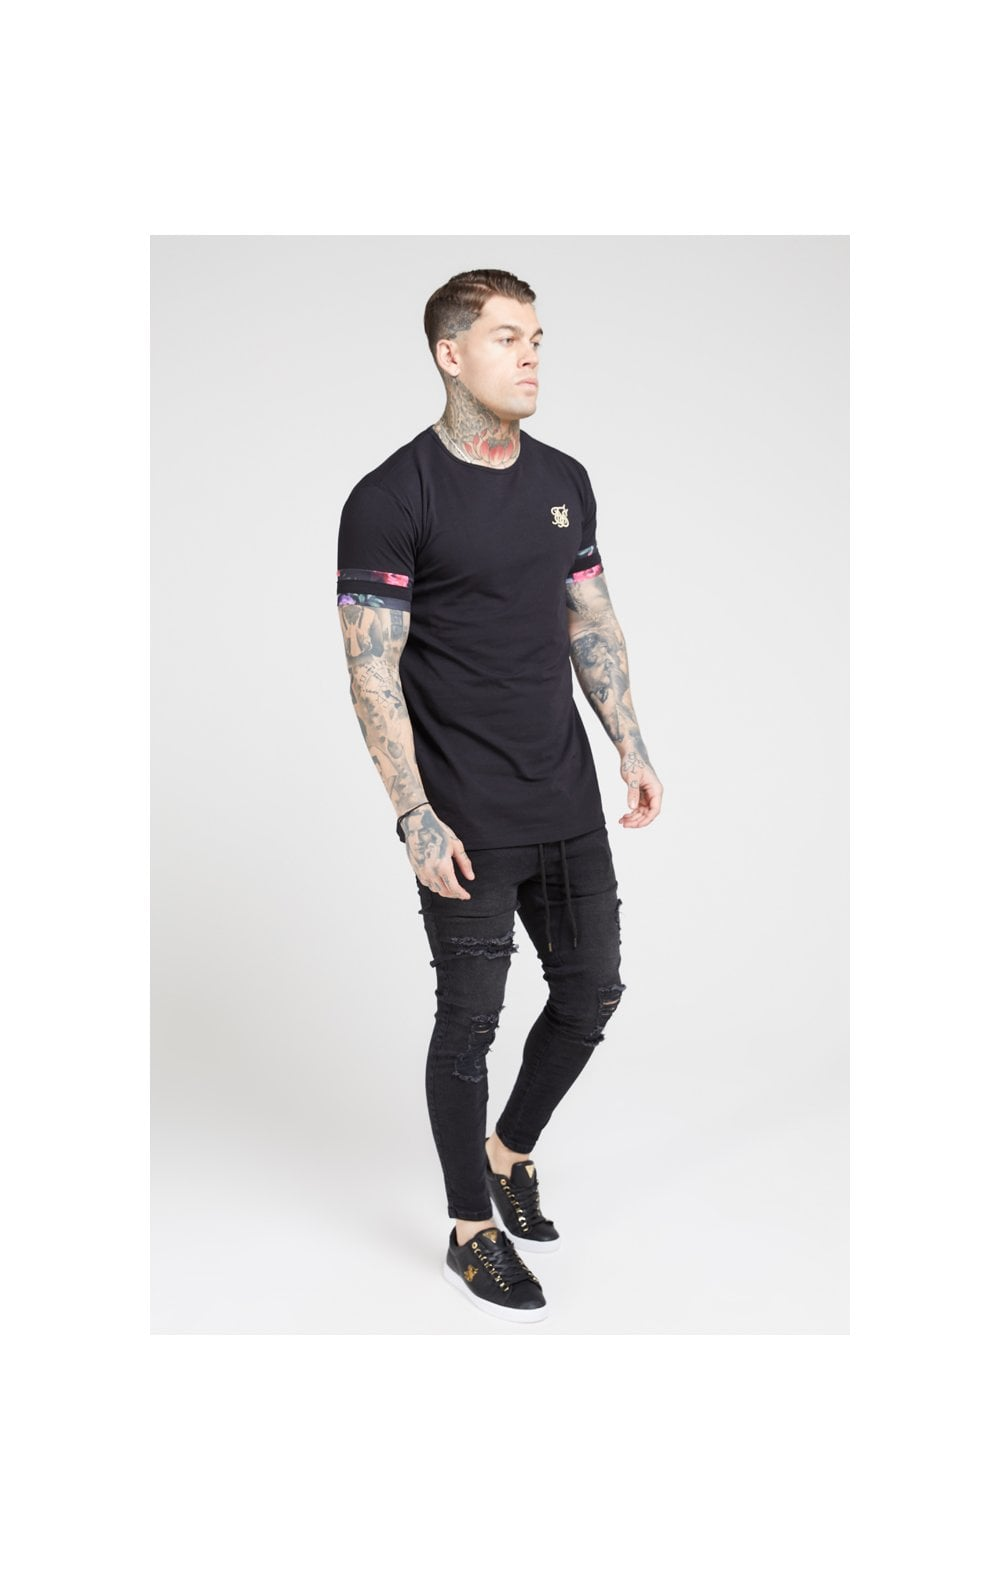 SikSilk S/S Tournament Tee – Black & Oil Paint (4)